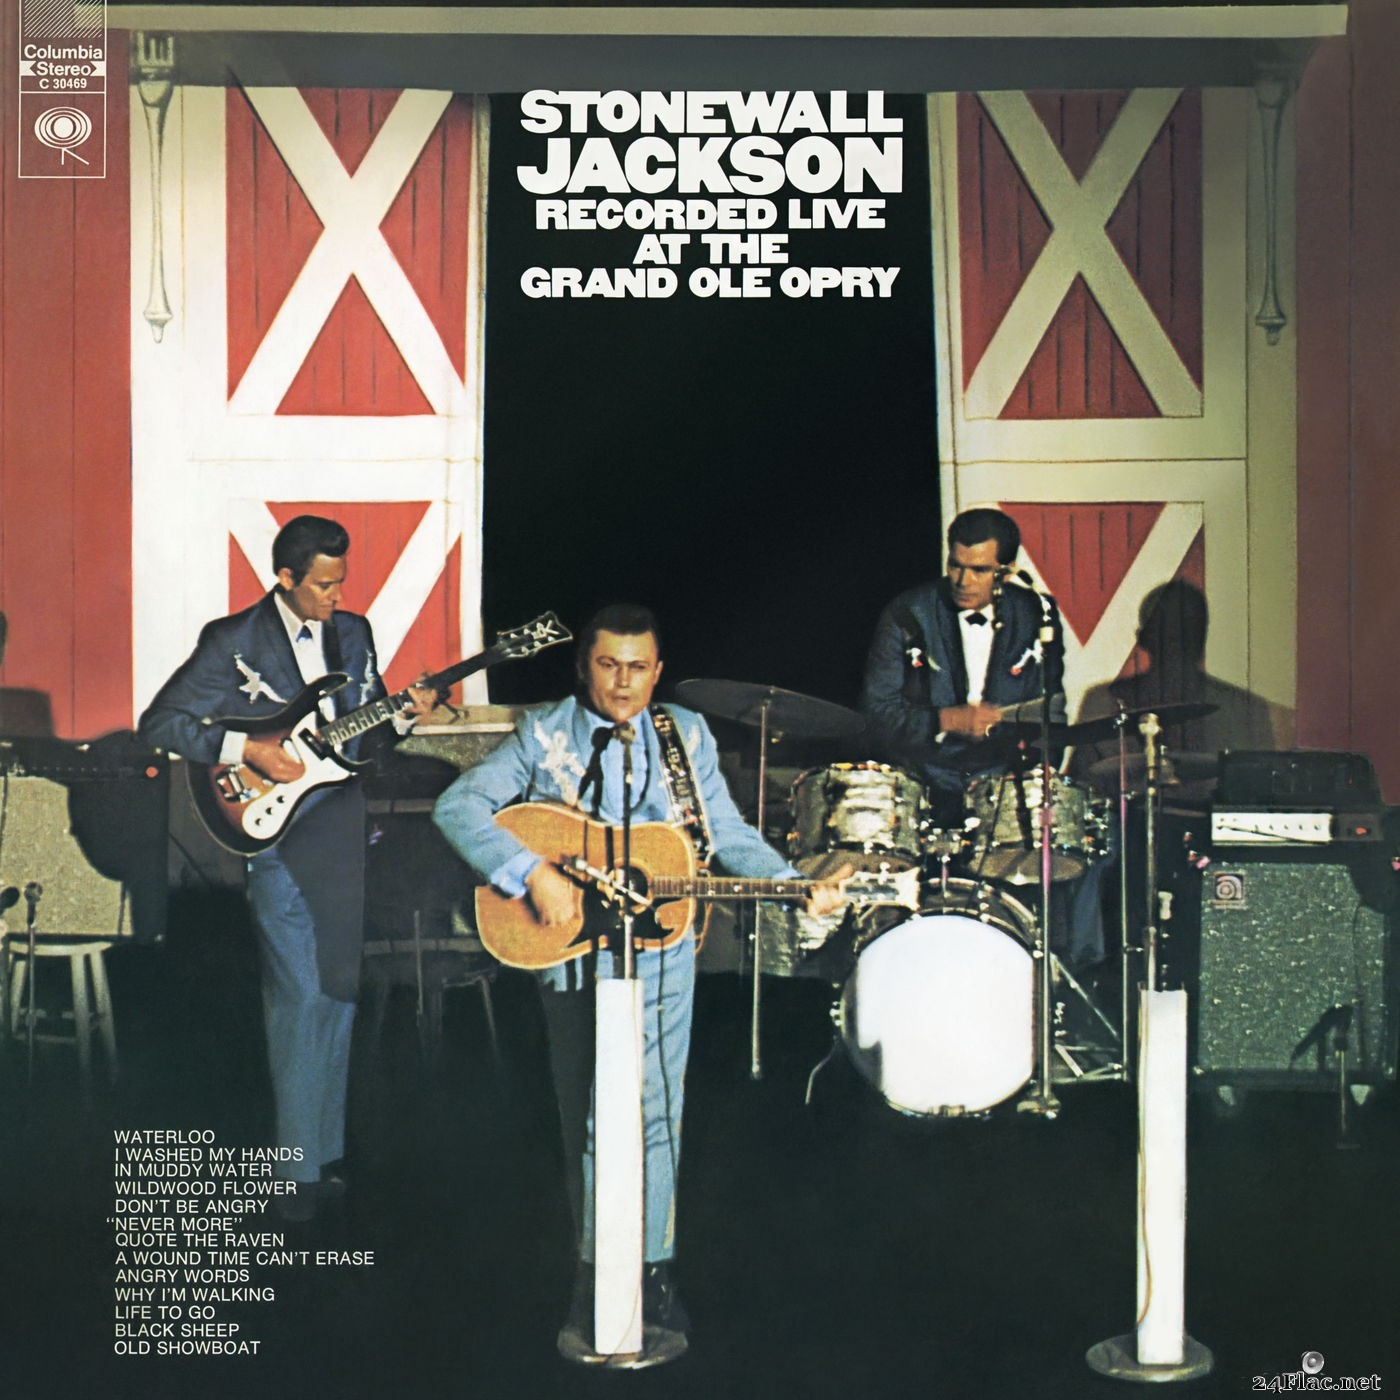 Stonewall Jackson - Recorded Live at The Grand Ole Opry (2018) Hi-Res